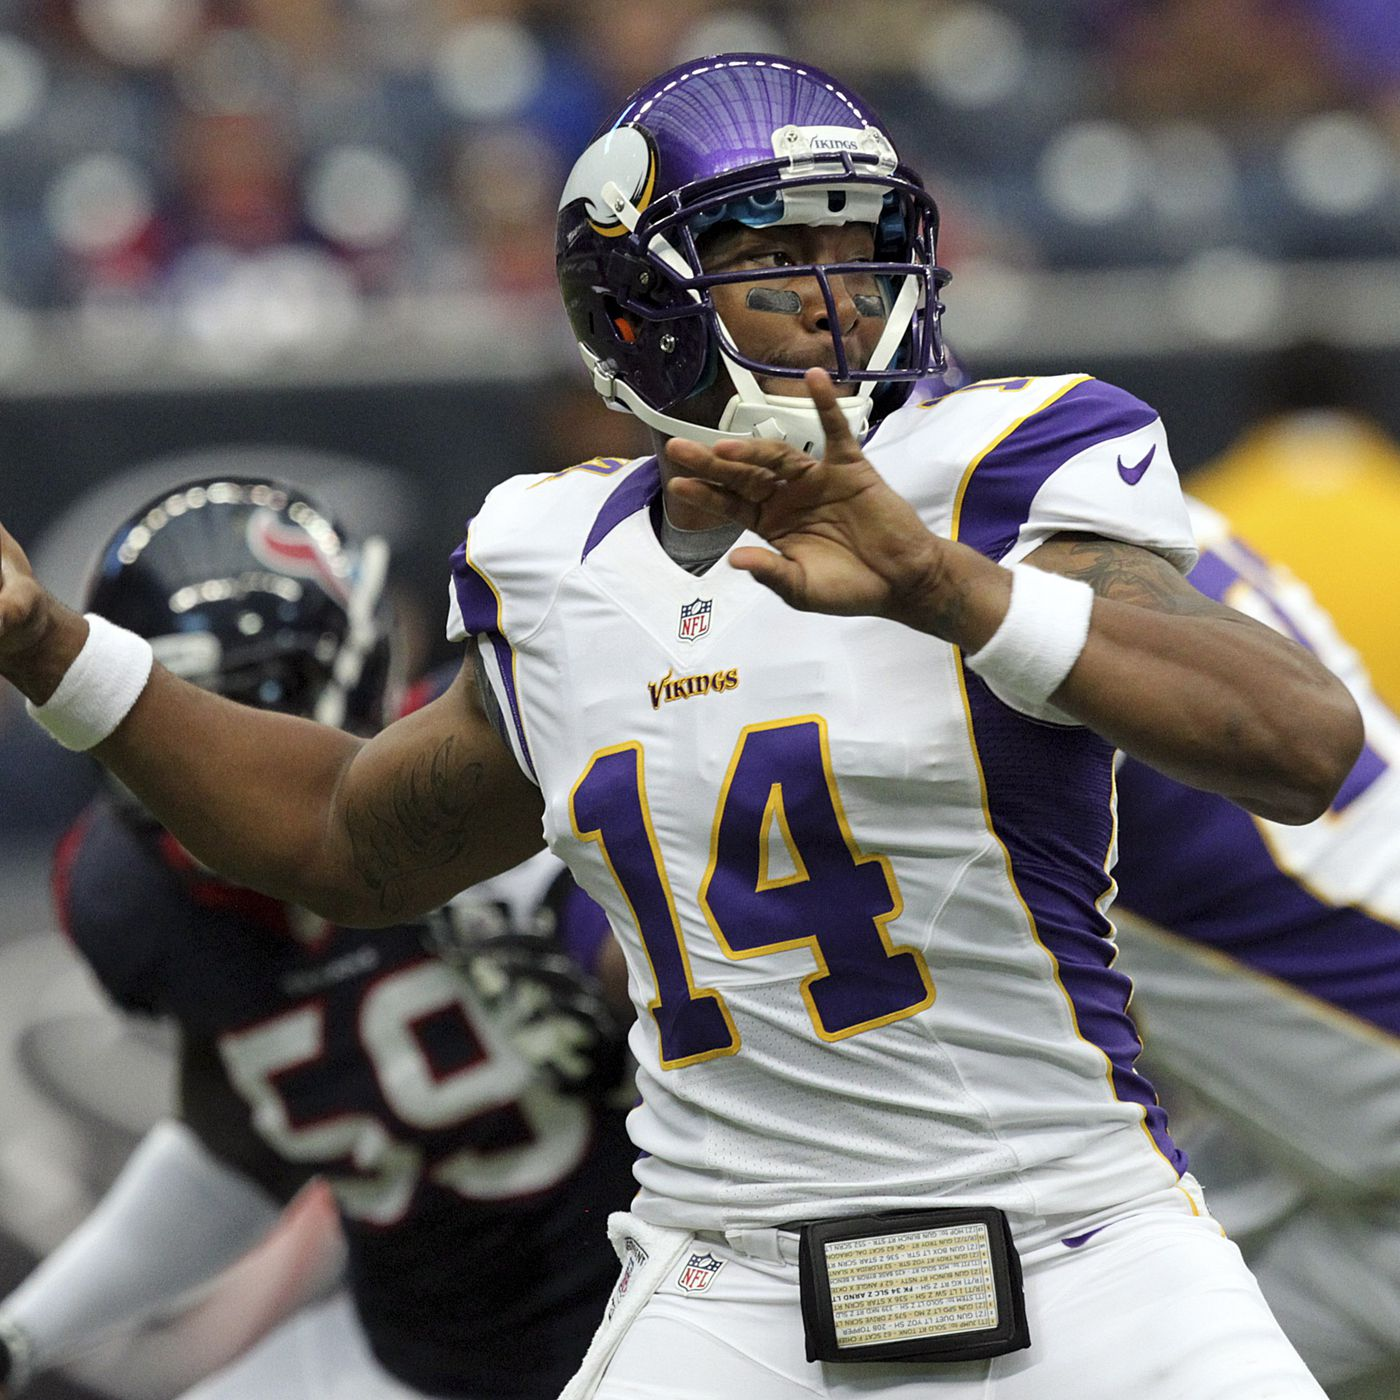 Joe Webb 'likely' to start for Vikings, according to report ...